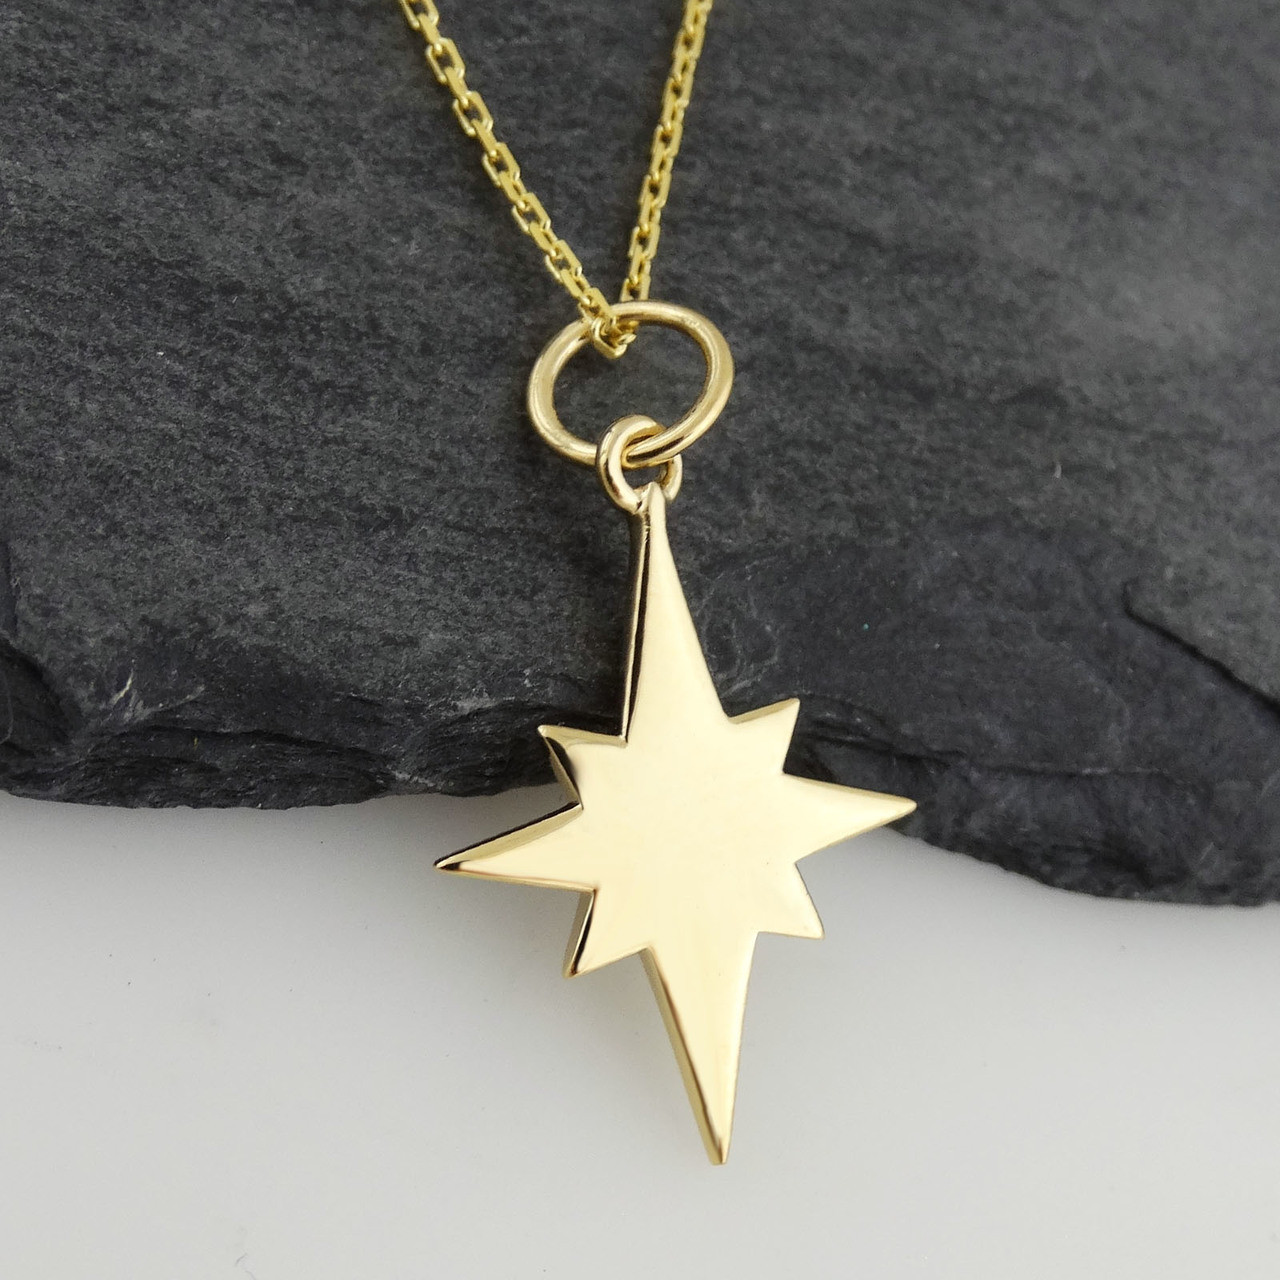 north walmart moments accent diamond pendant chain star silver with sterling com ip precious